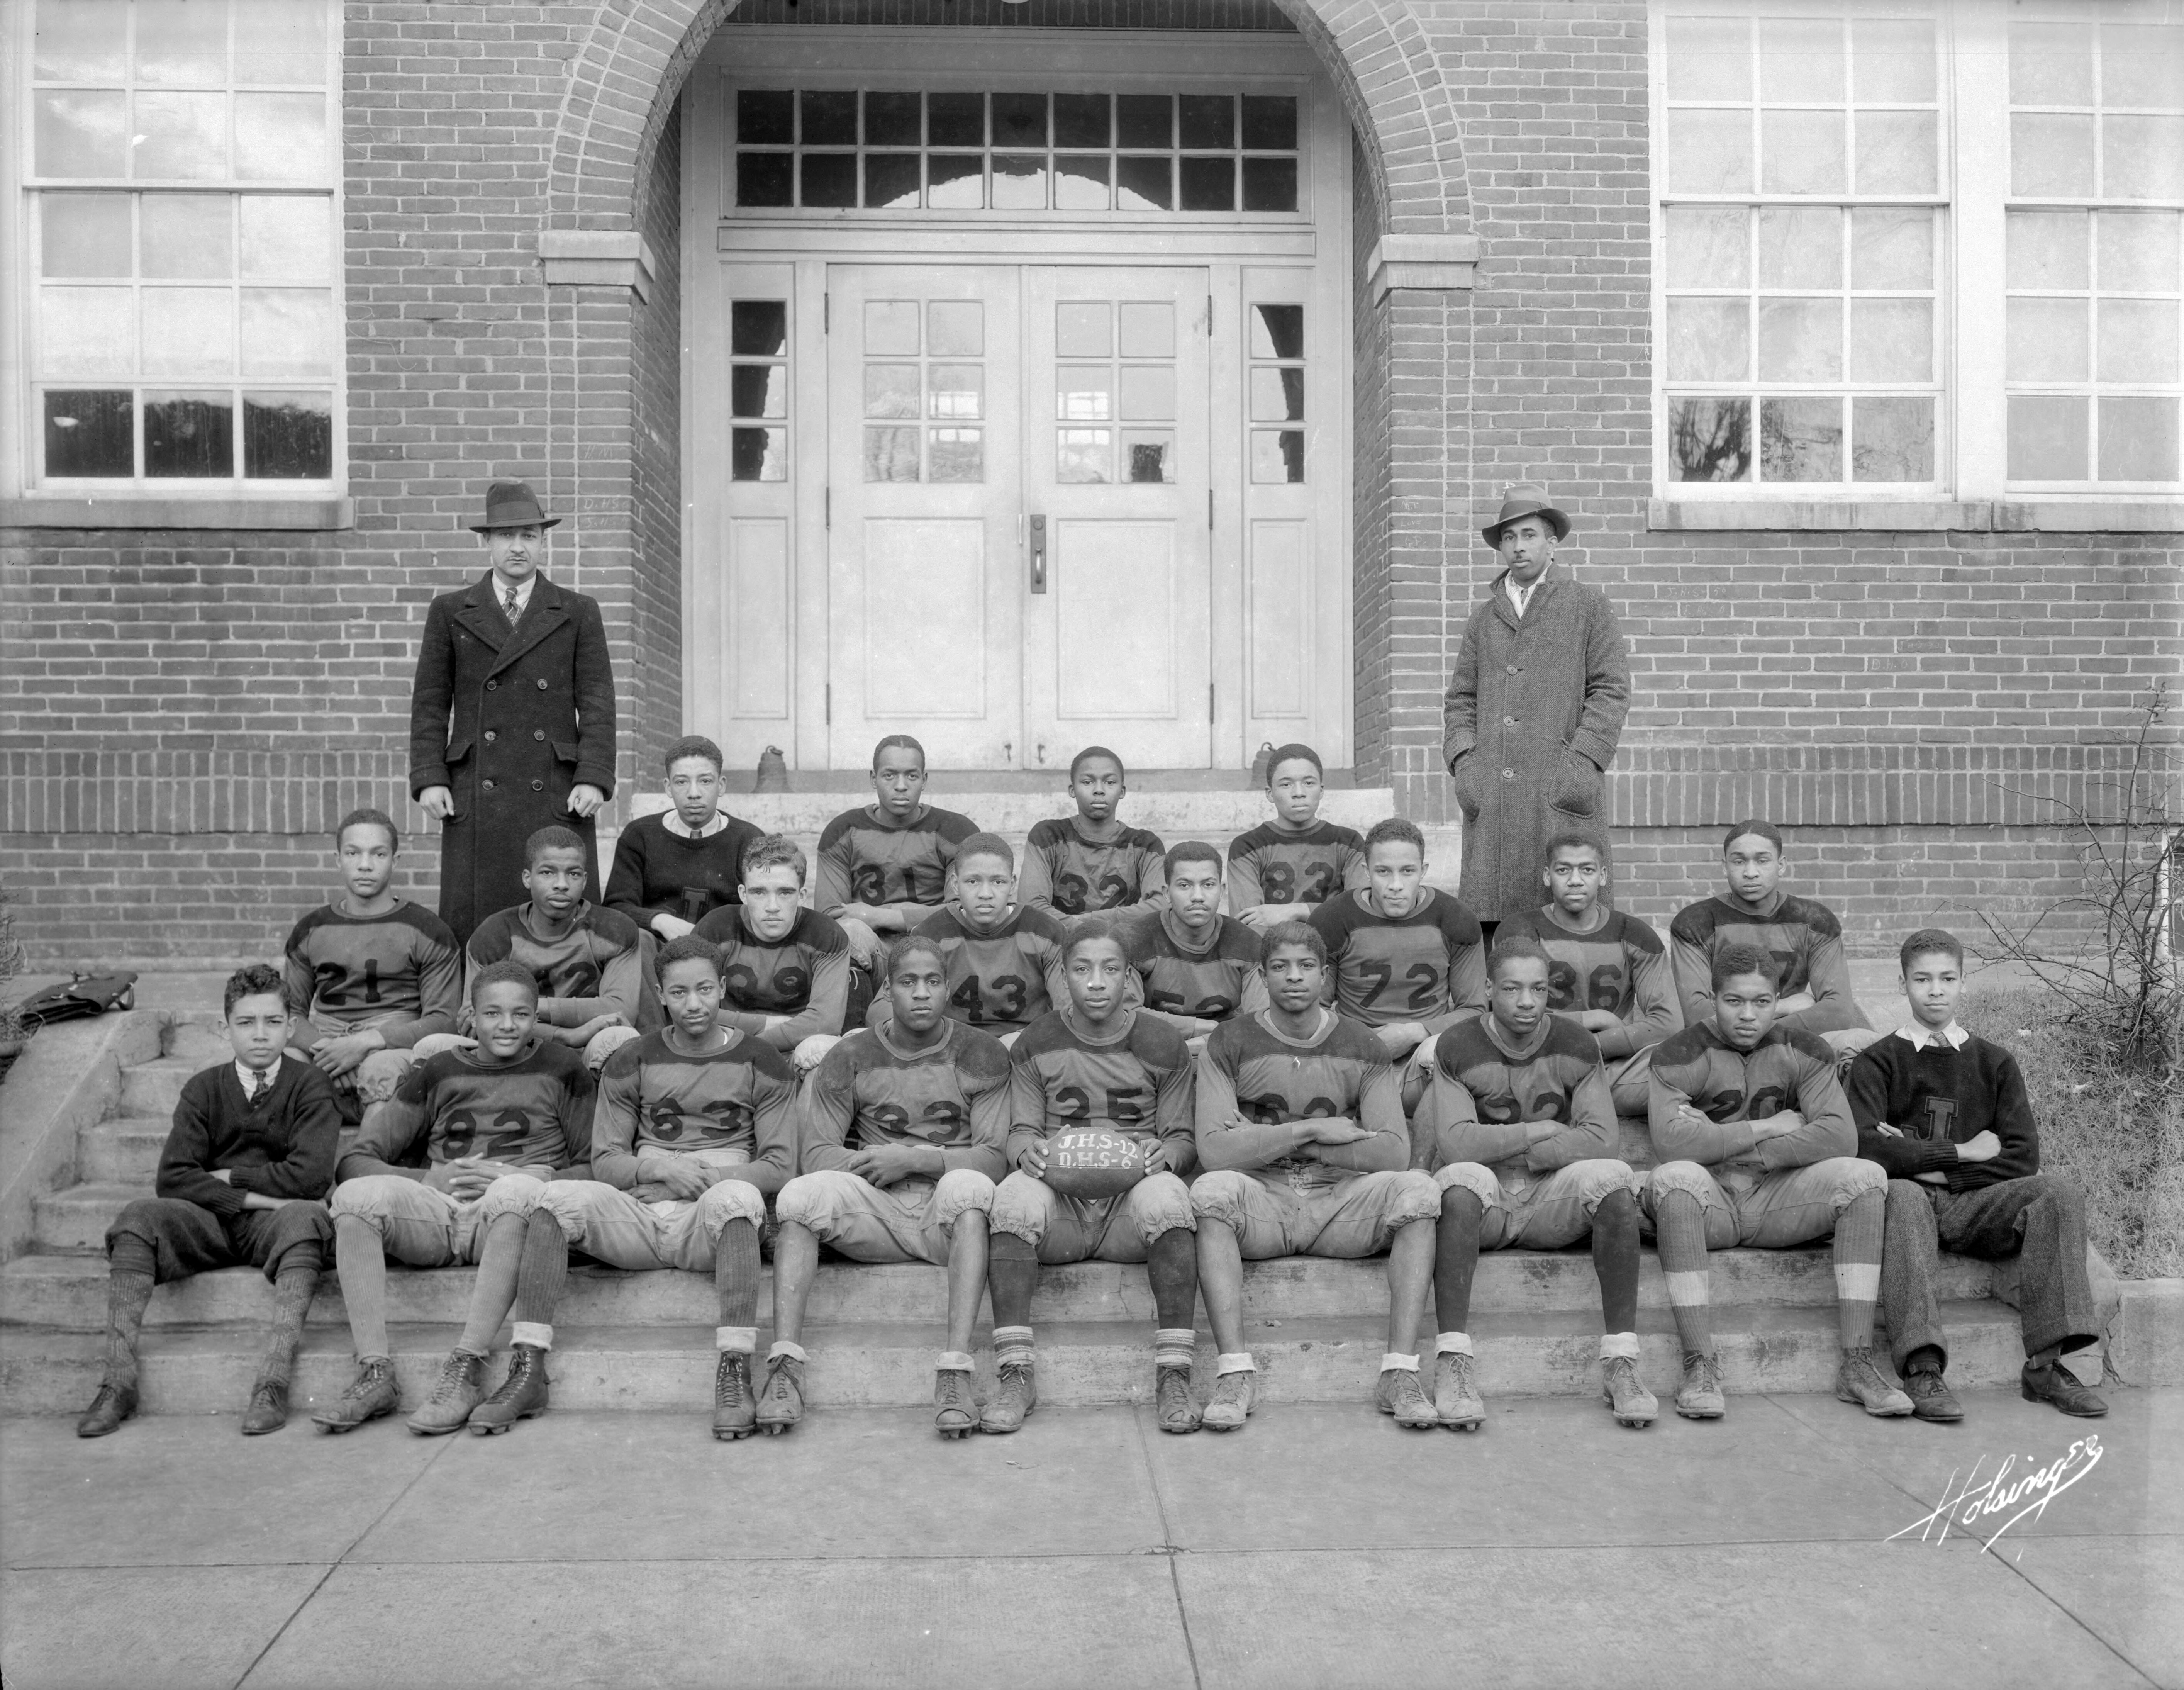 Jefferson High School Football Team